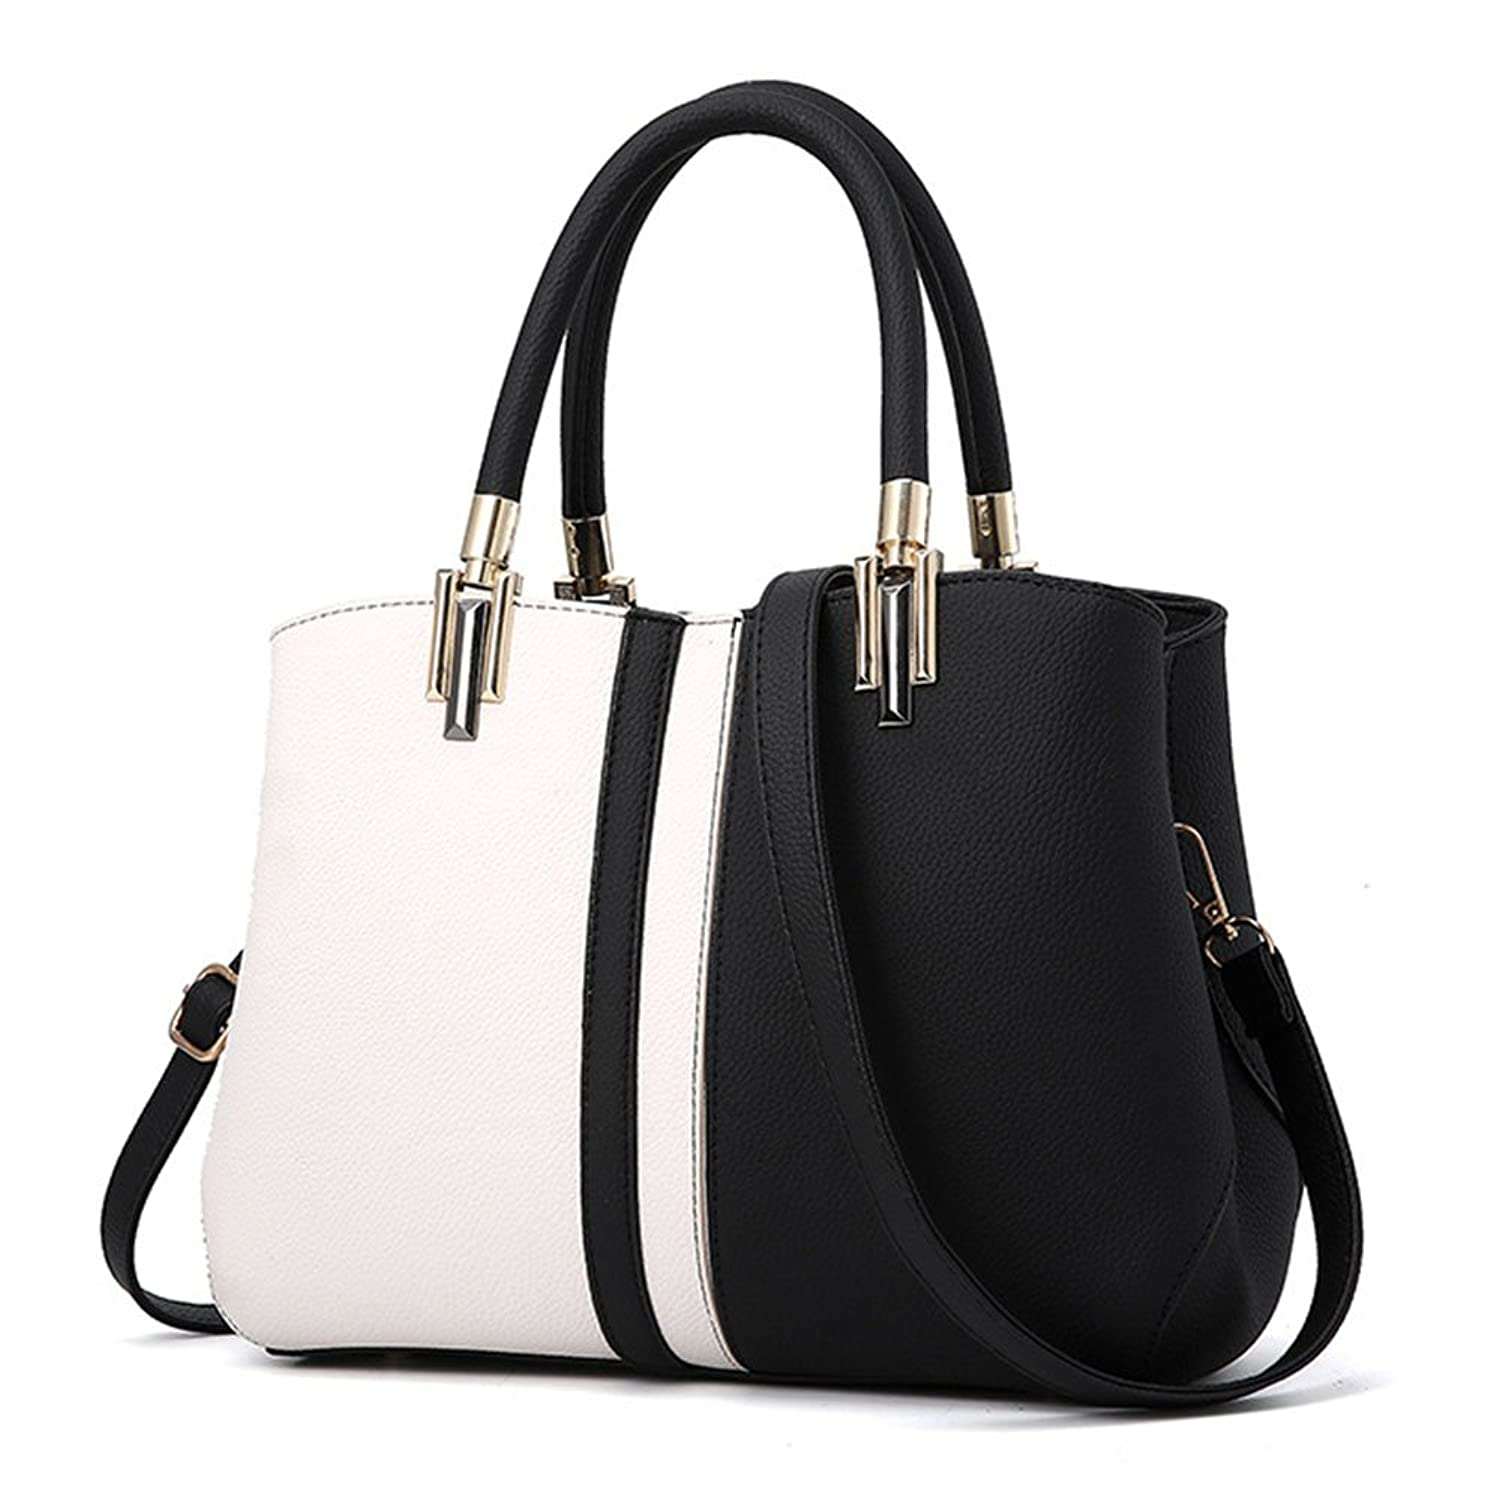 b8aa51a03e0c TIBES Fashion High-end PU Leather Handbag Women Party Tote Wedding Purse  for Women